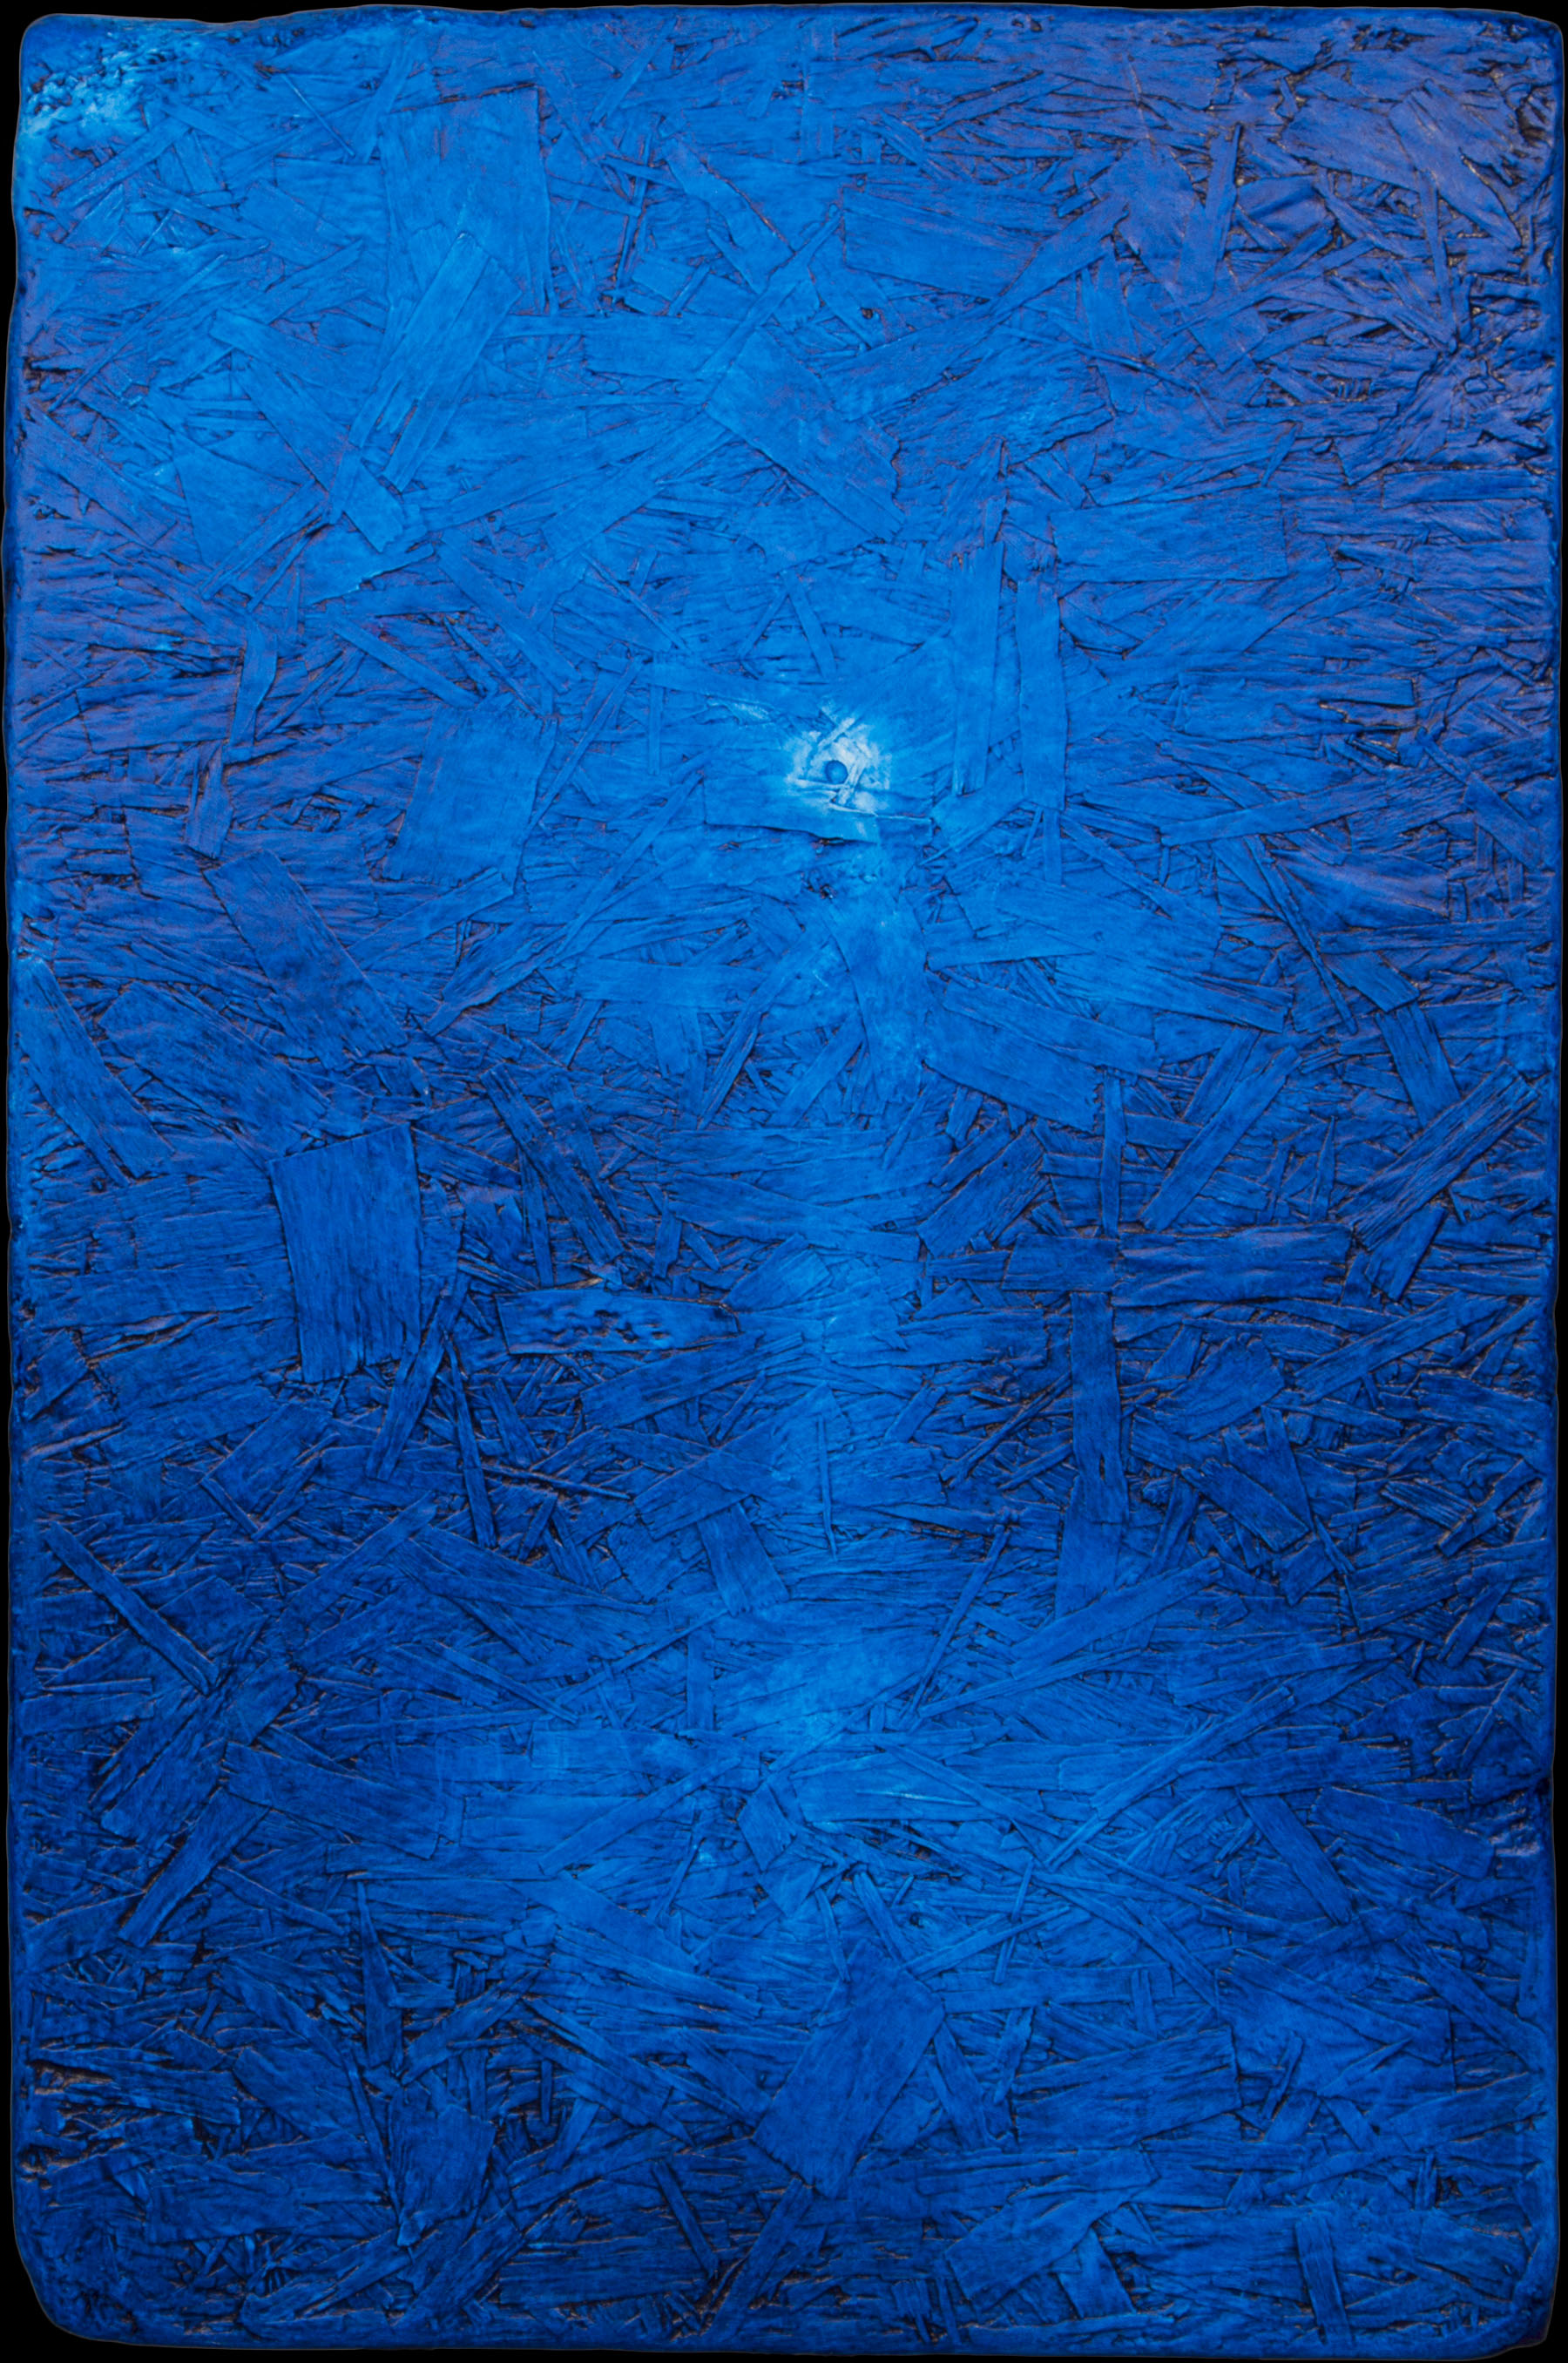 Blue paint on wood background